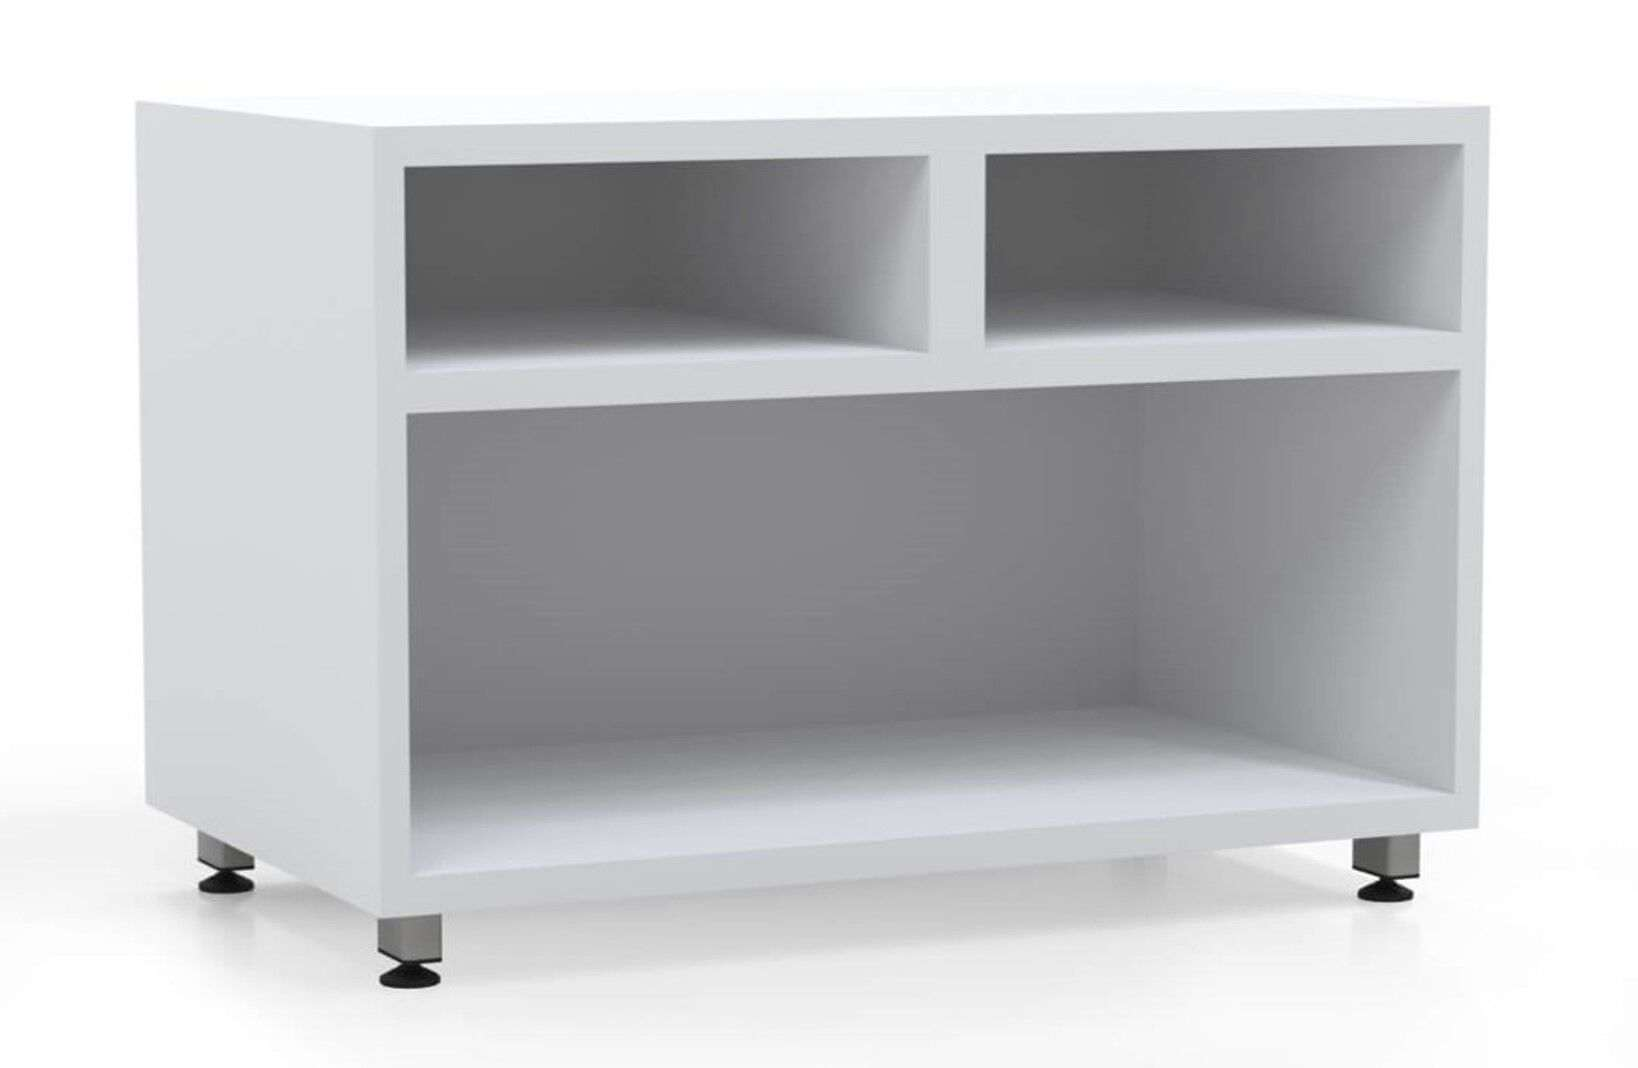 L shaped writing desk open storage container white_preview